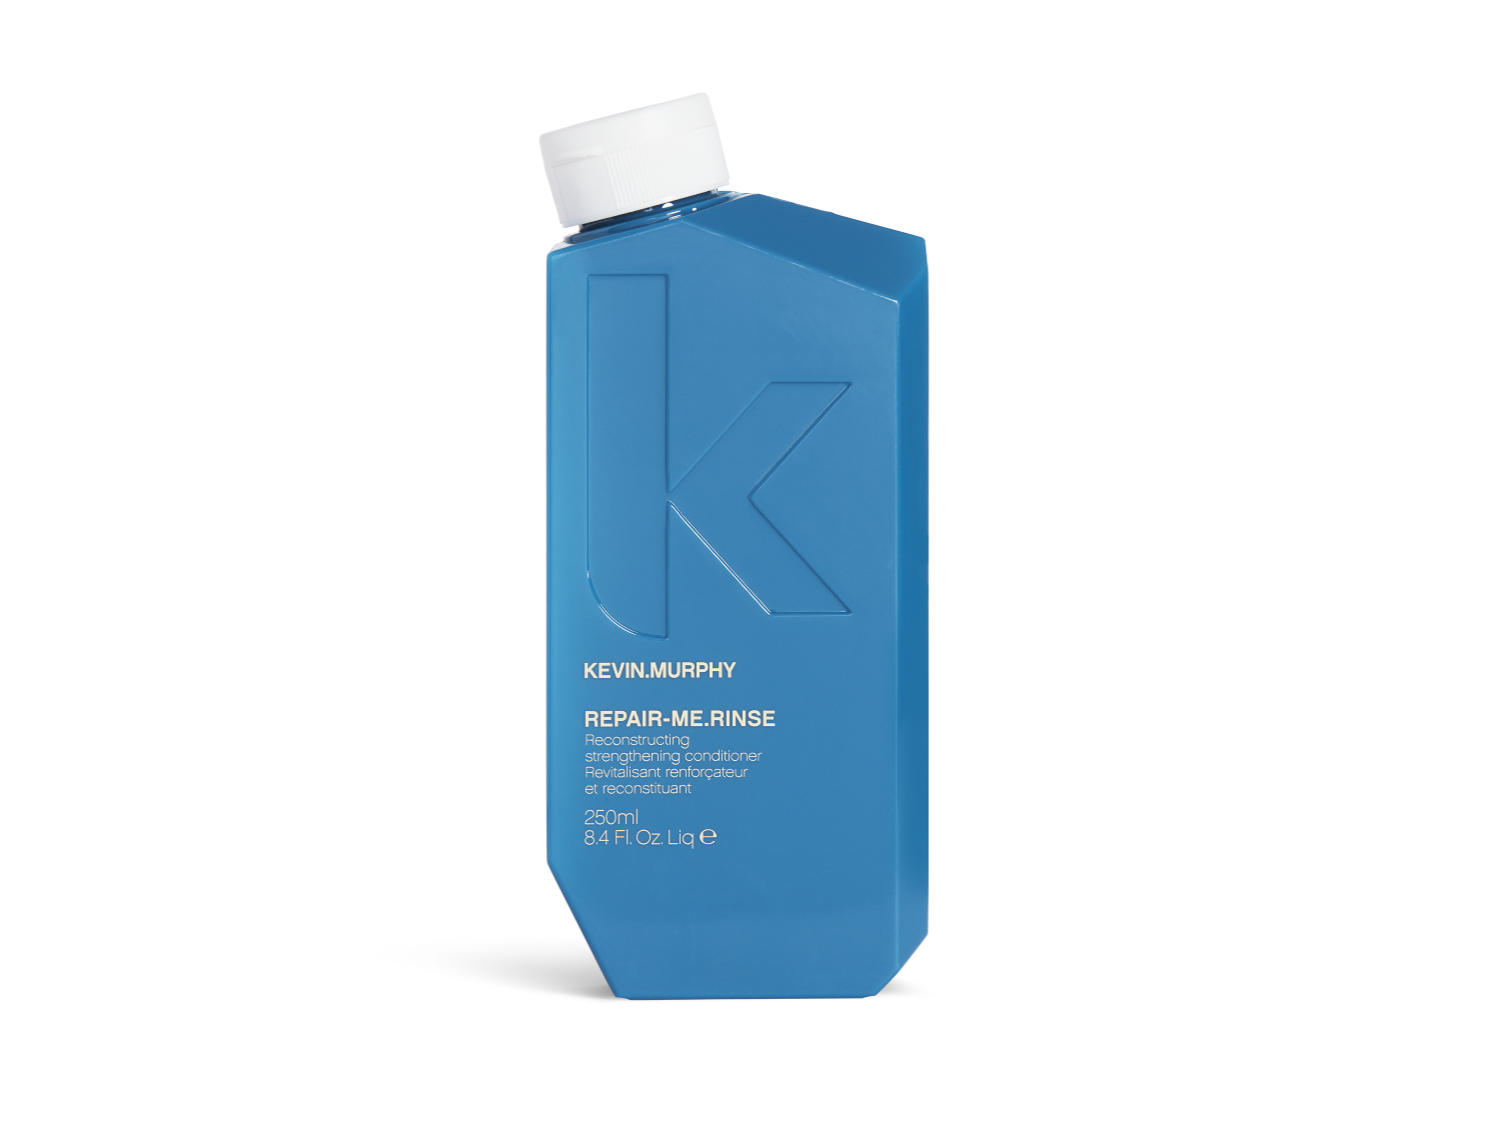 Arma Beauty - Kevin Murphy - REPAIR.ME.RINSE